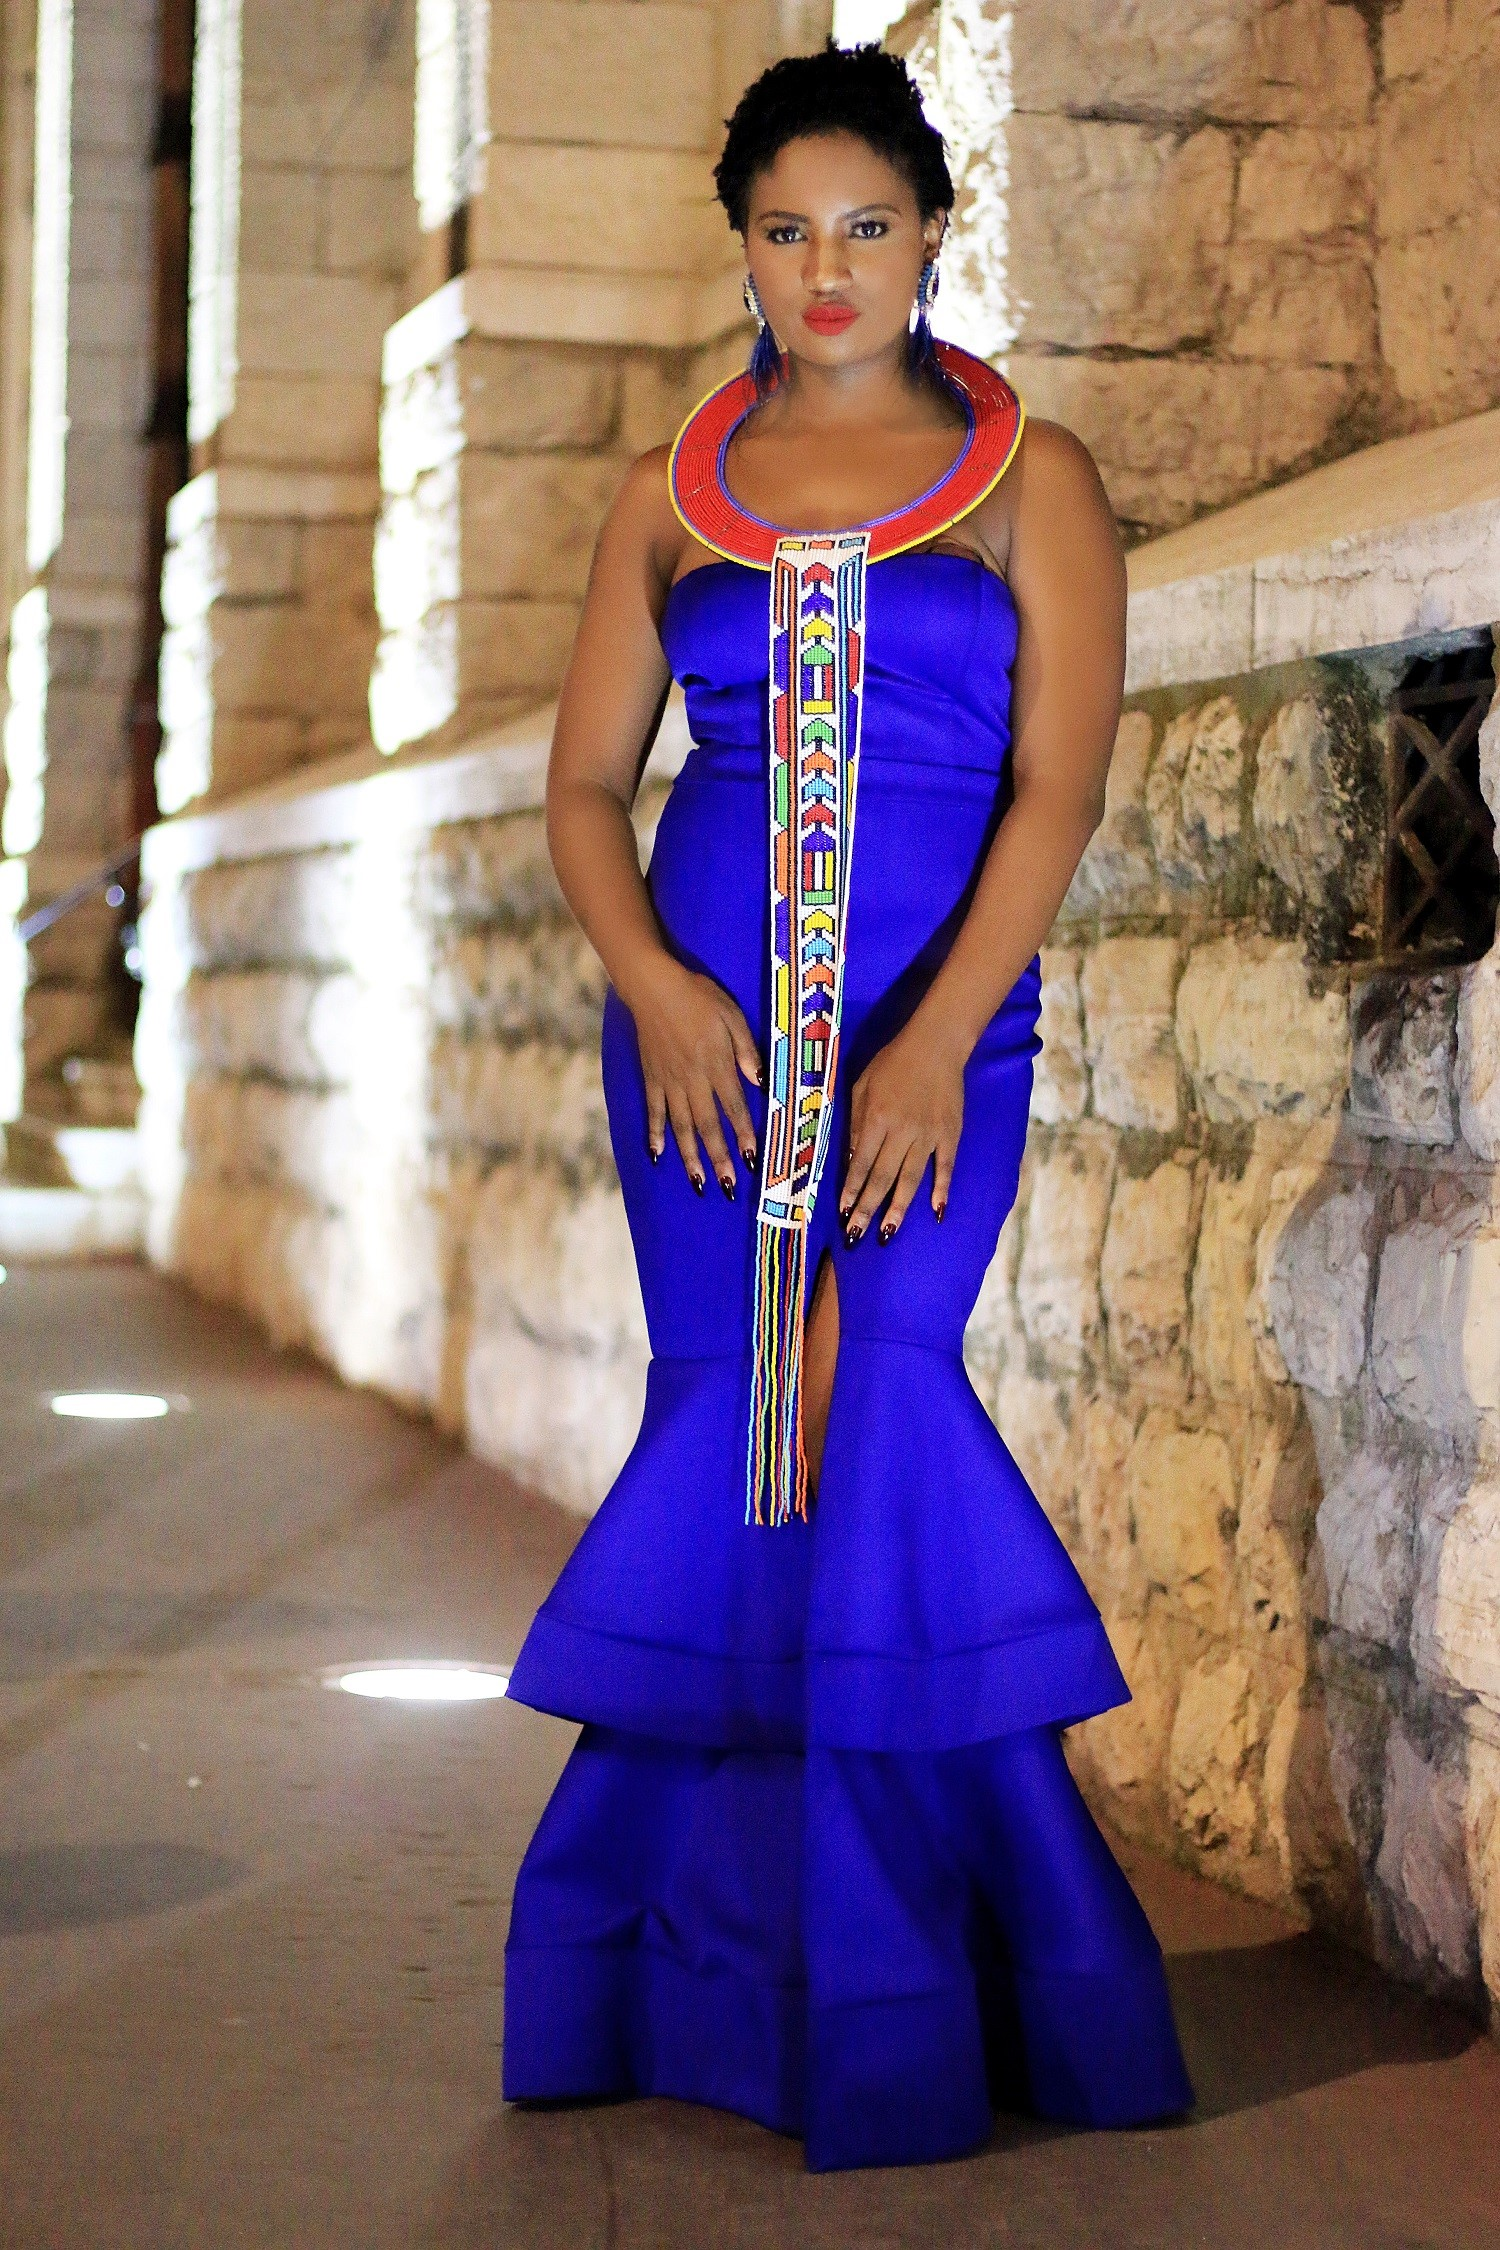 kenyan fashion blogger (2)